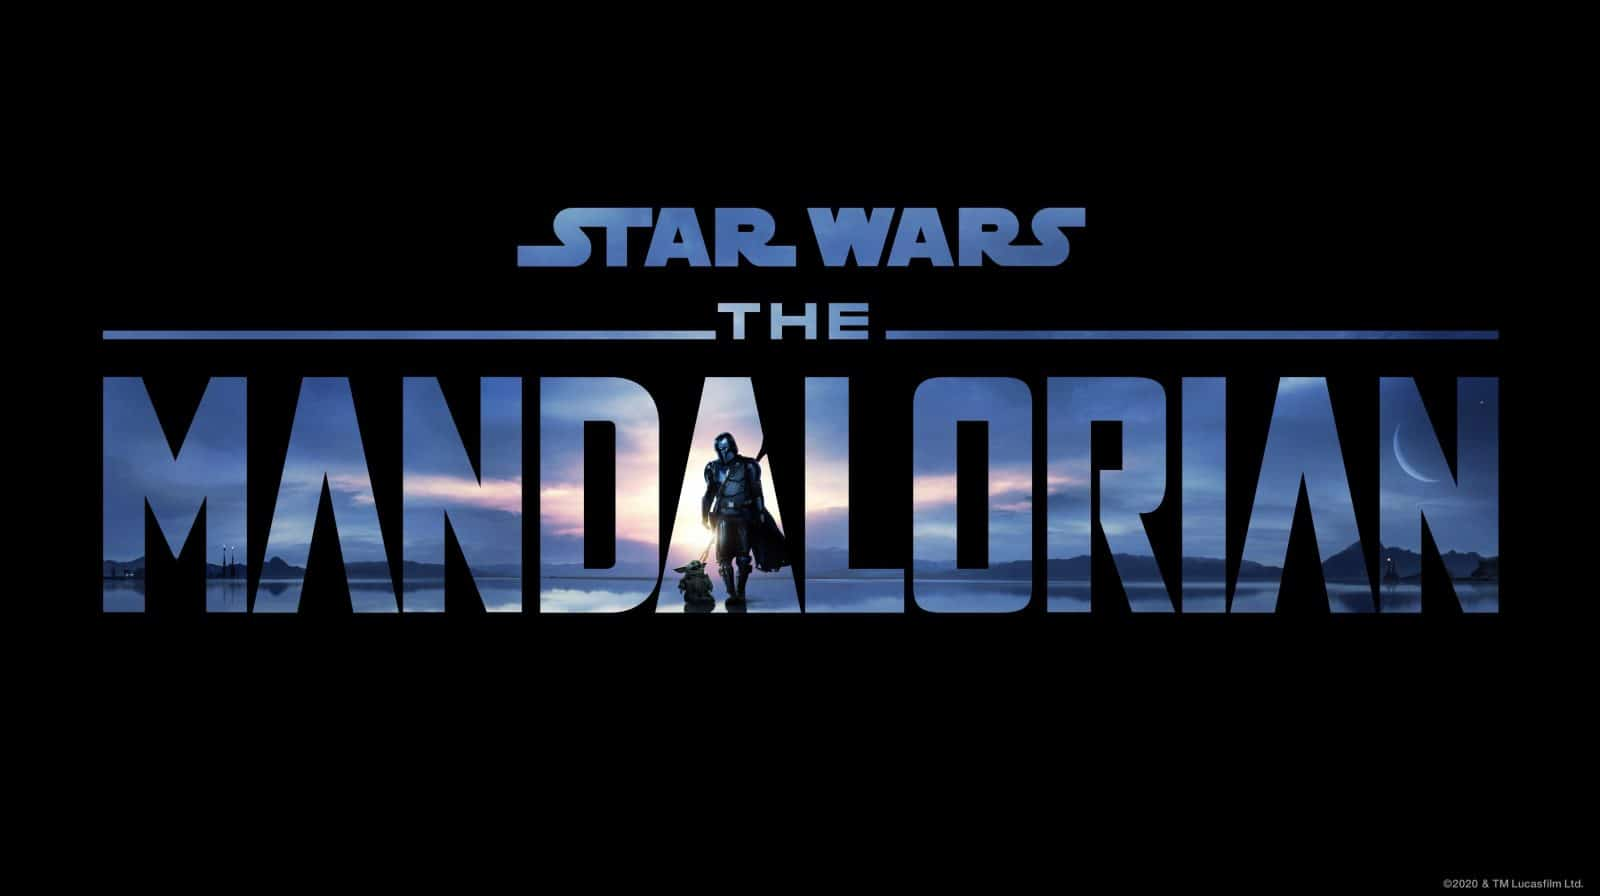 The Mandalorian Character Posters